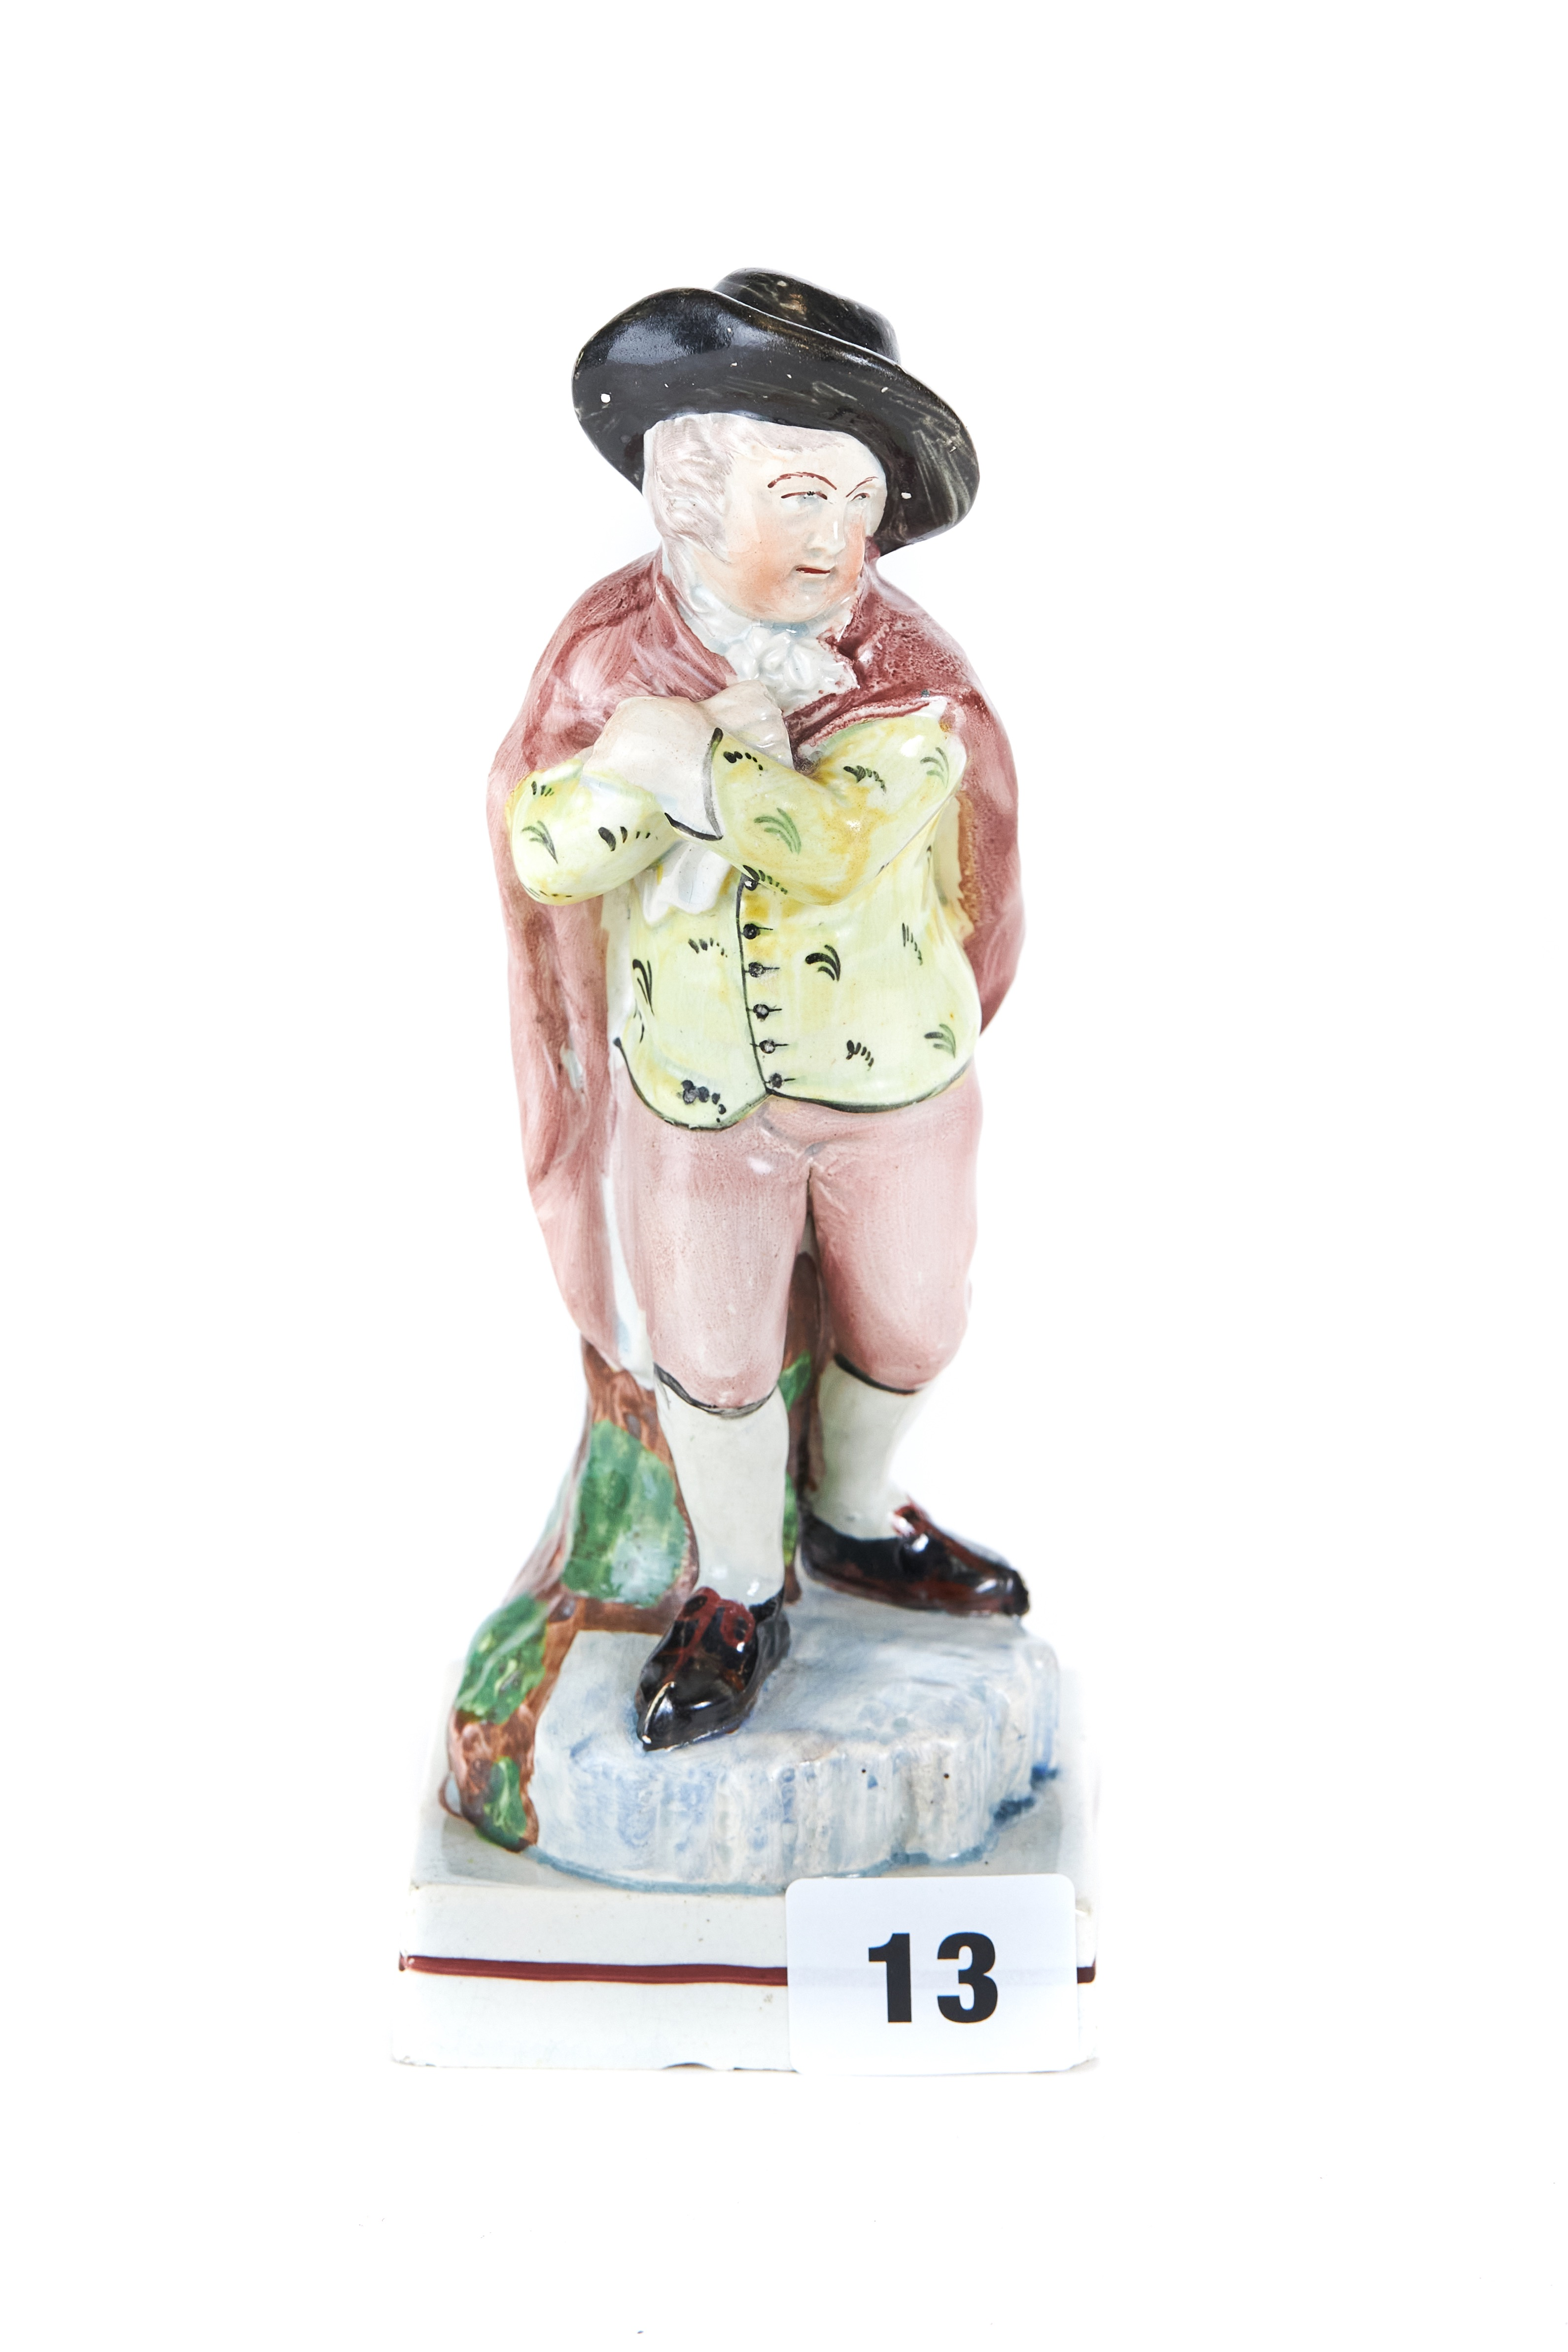 Lot 13 - AN 18TH CENTURY ENGLISH POTTERY WOOD TYPE FIGURE of a male ice skater wearing a brown cloak,